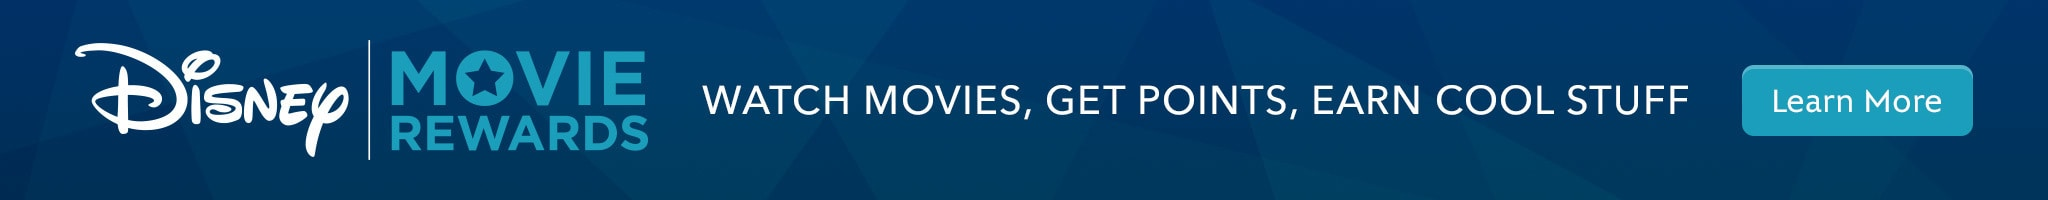 Disney Movie Rewards -watch movies, get points, earn cool stuff, learn more